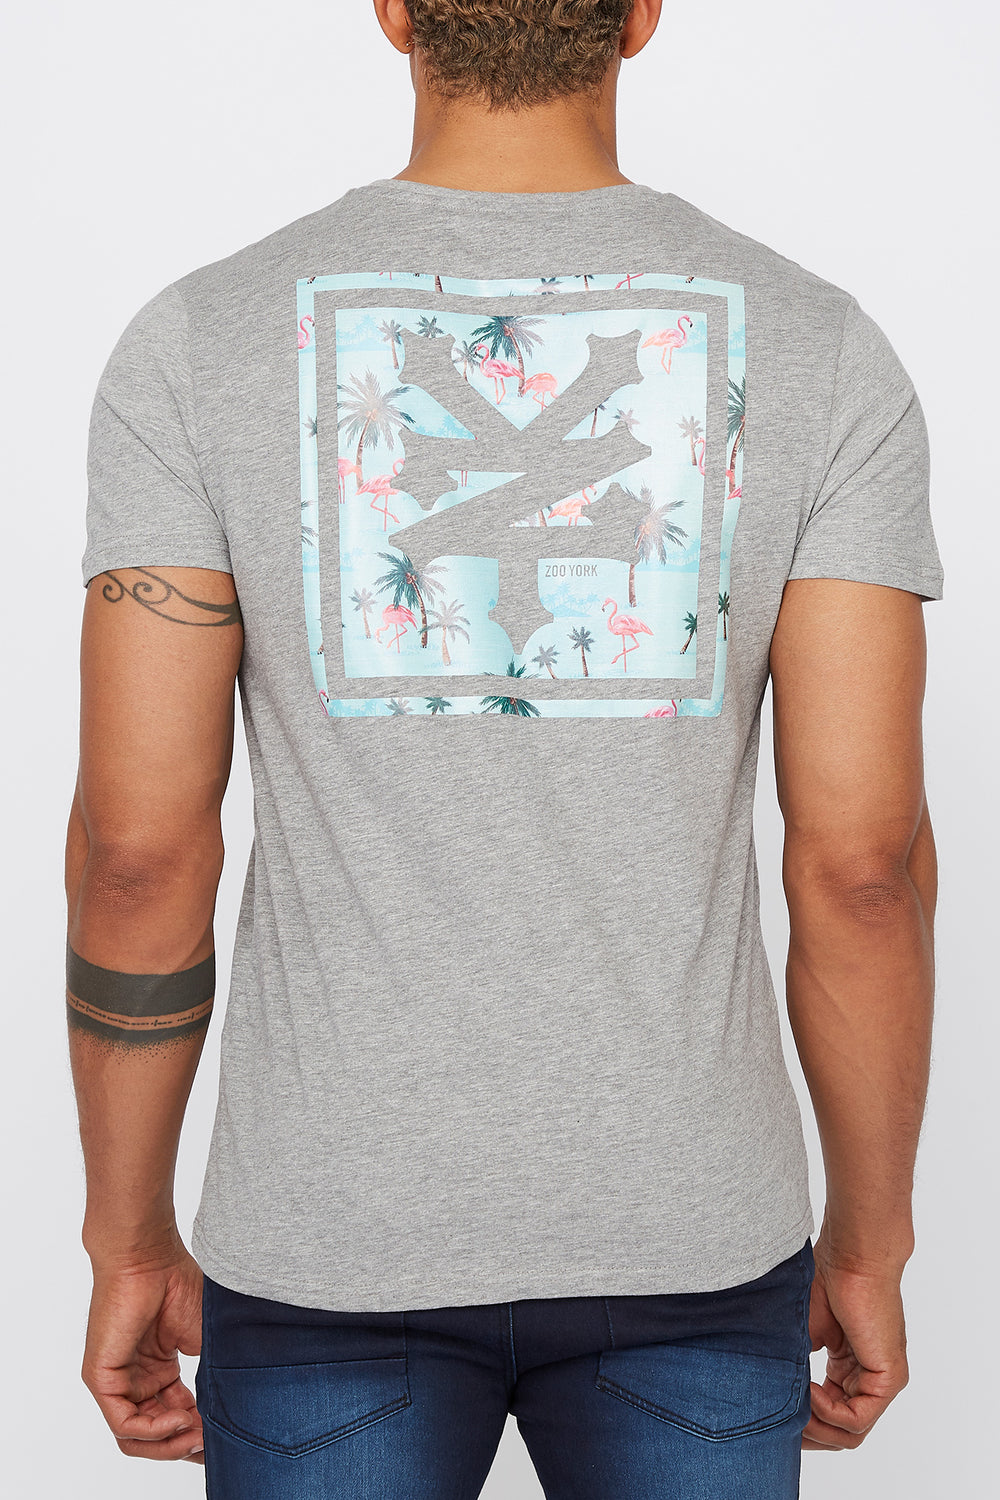 T-Shirt Flamants Roses Zoo York Homme Gris